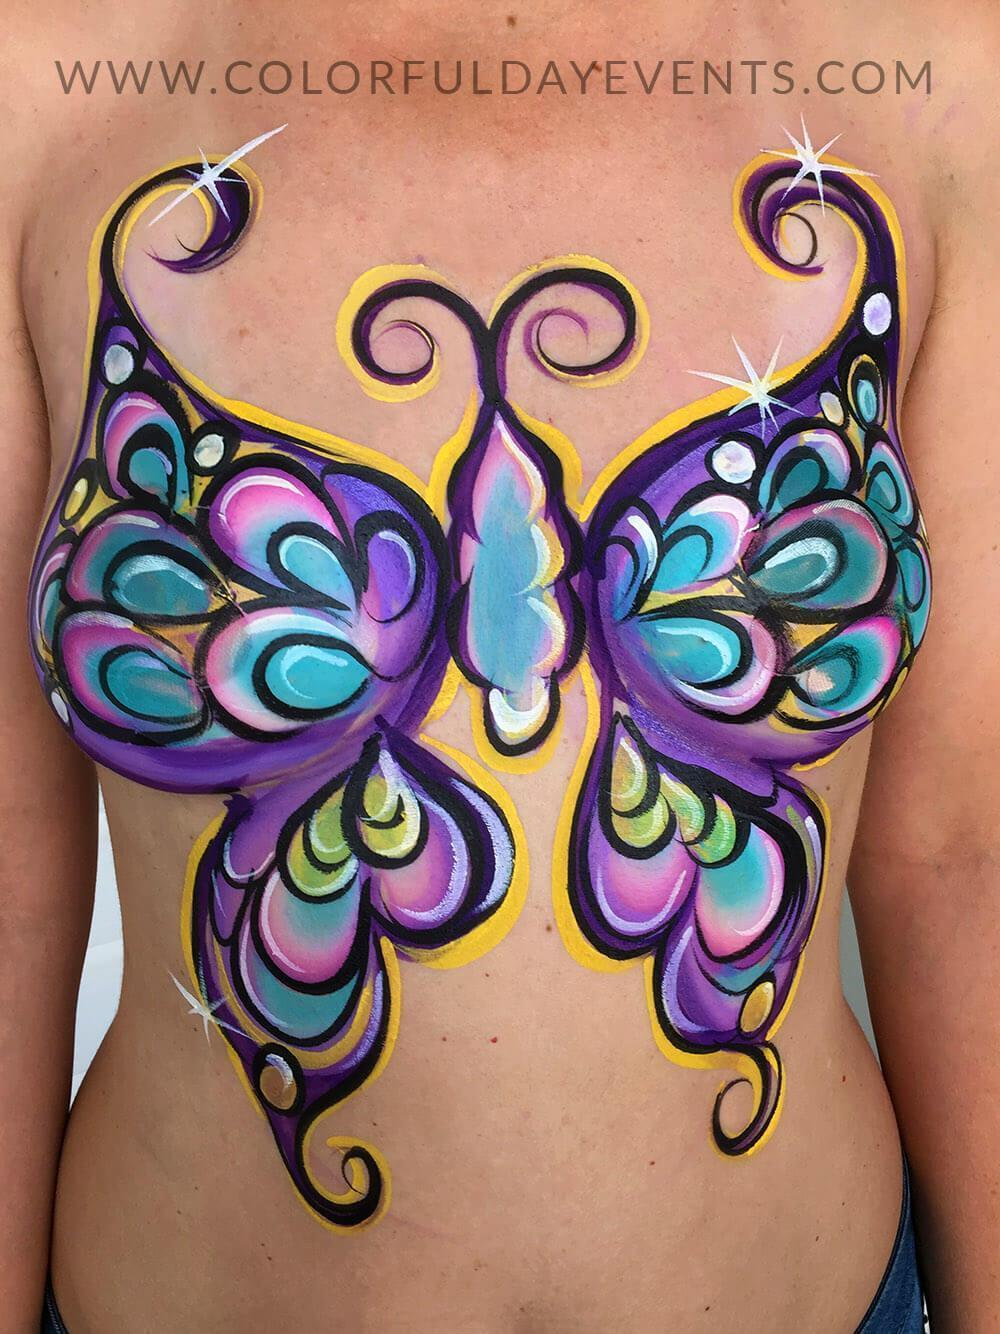 Fantasy fest body painting artist for hire